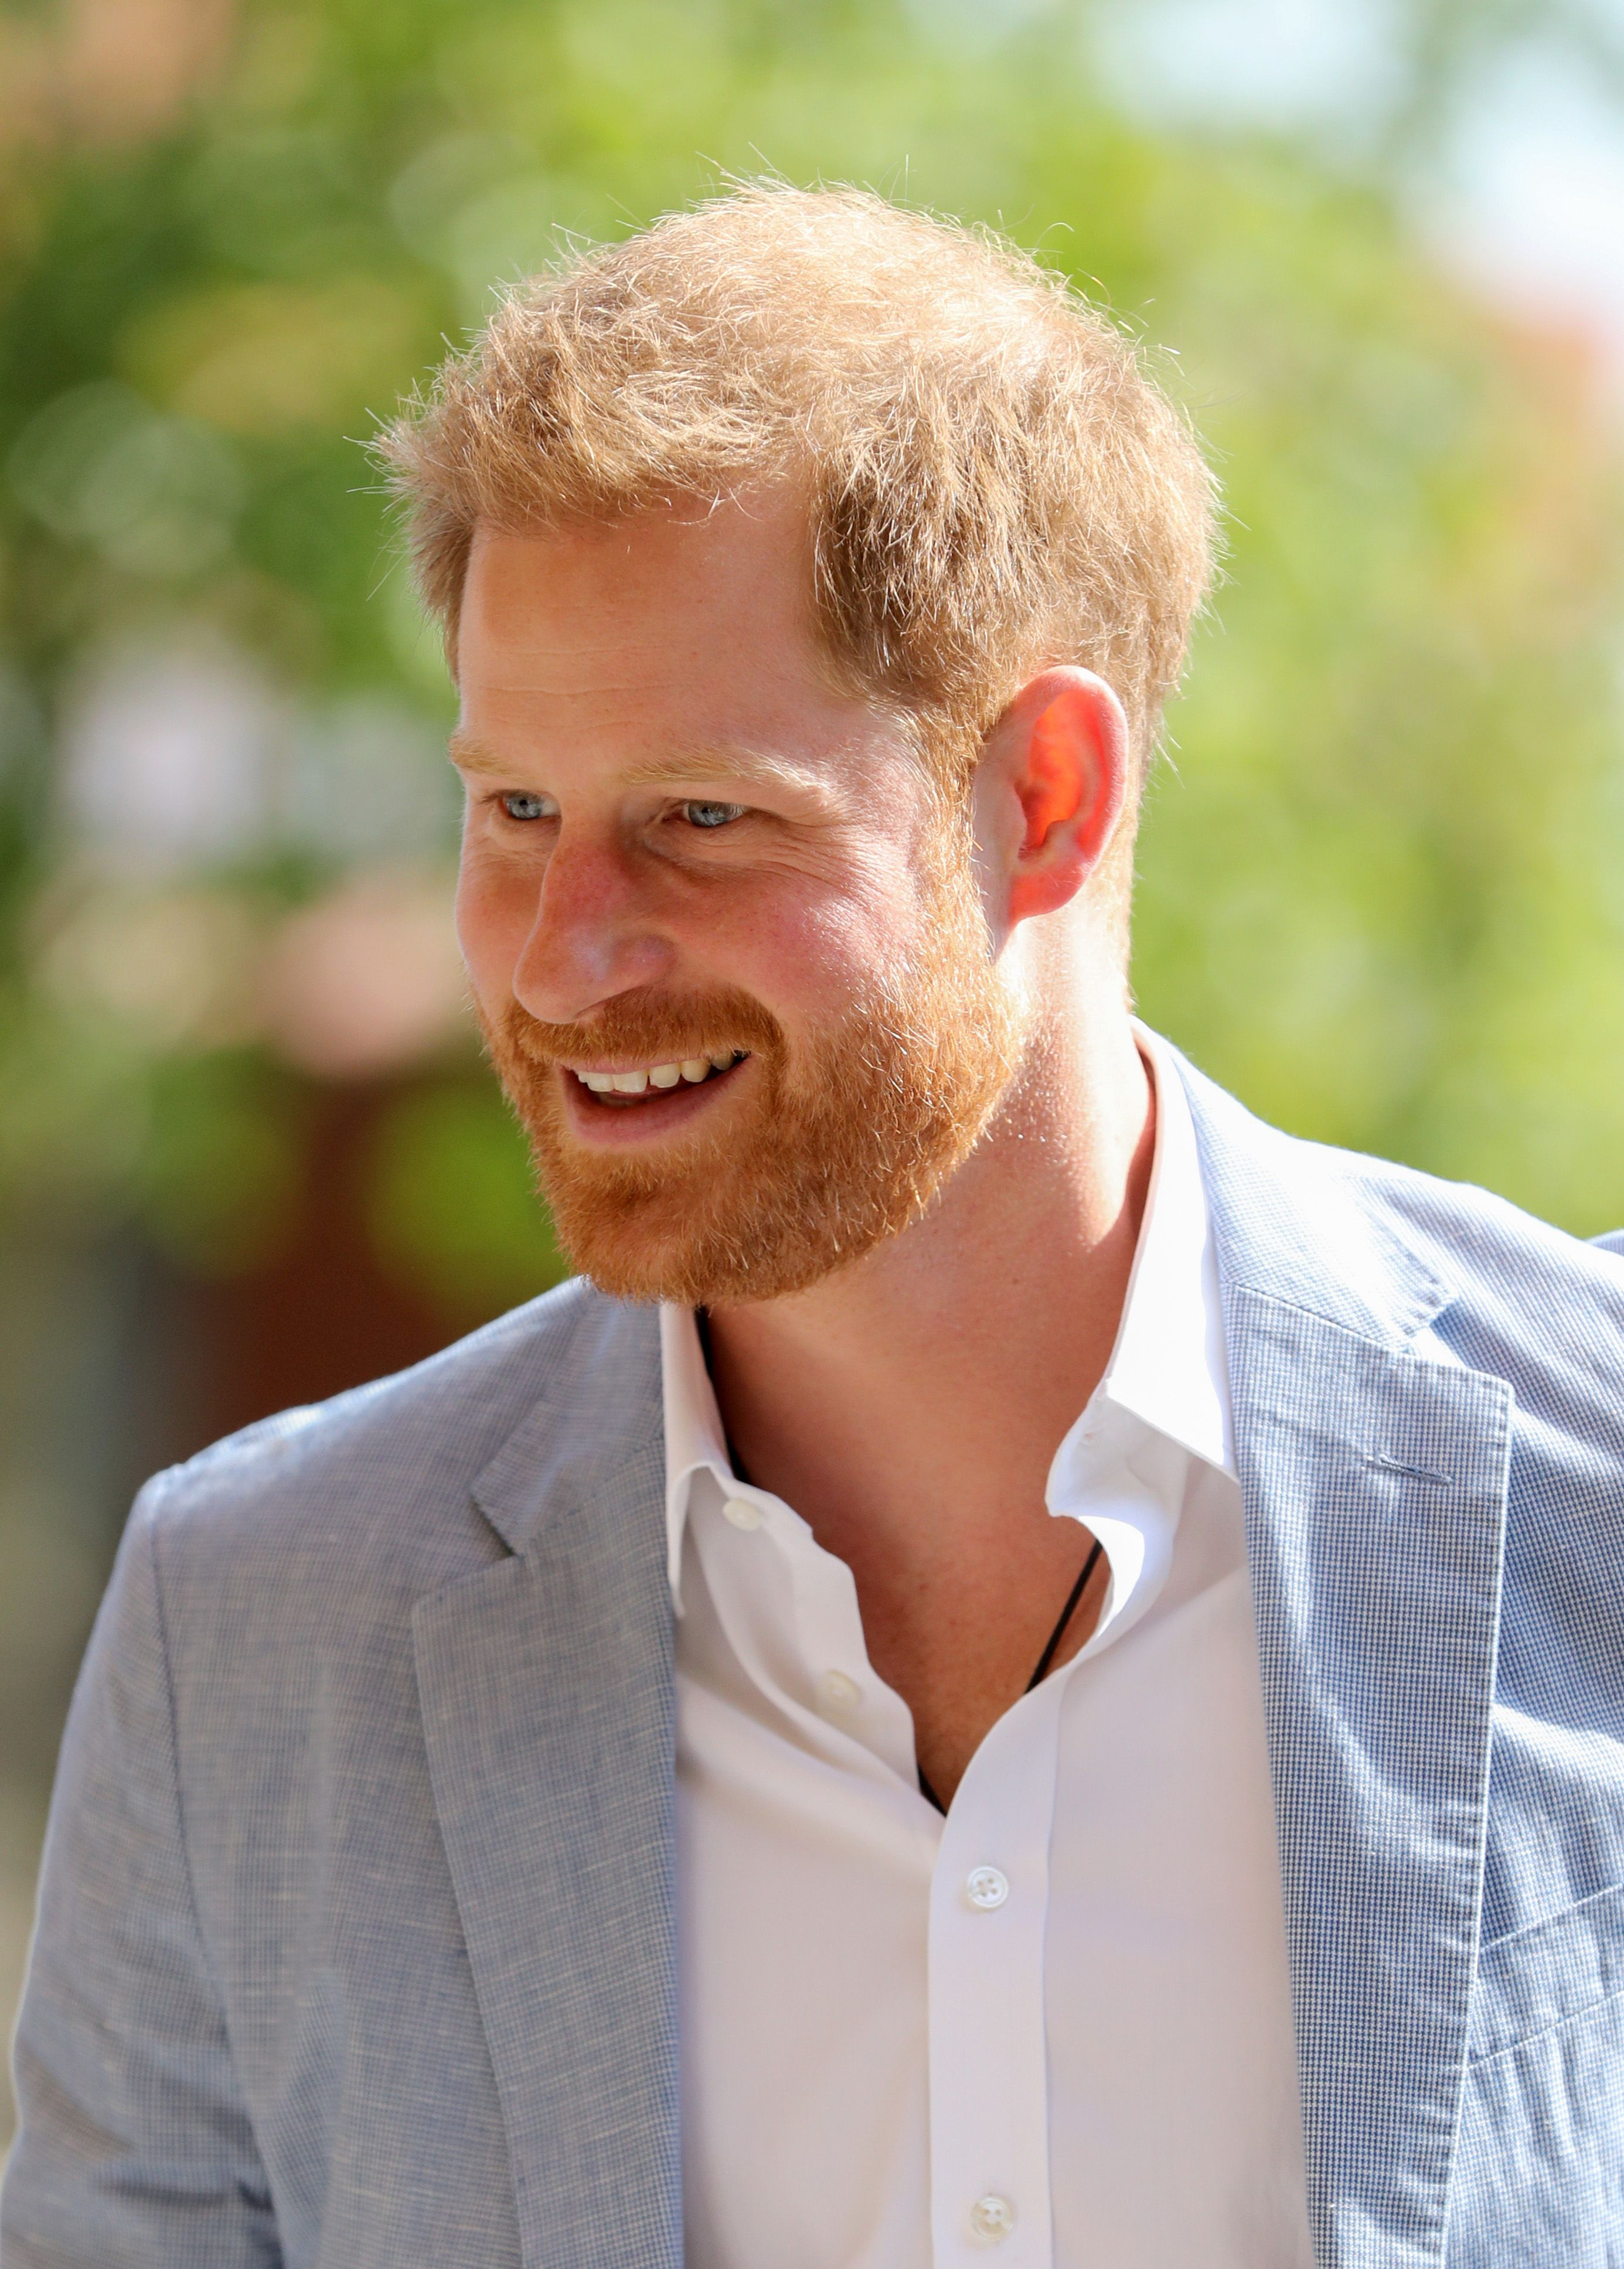 Prince Harry Was Showered With Royal Well-Wishes On His Birthday